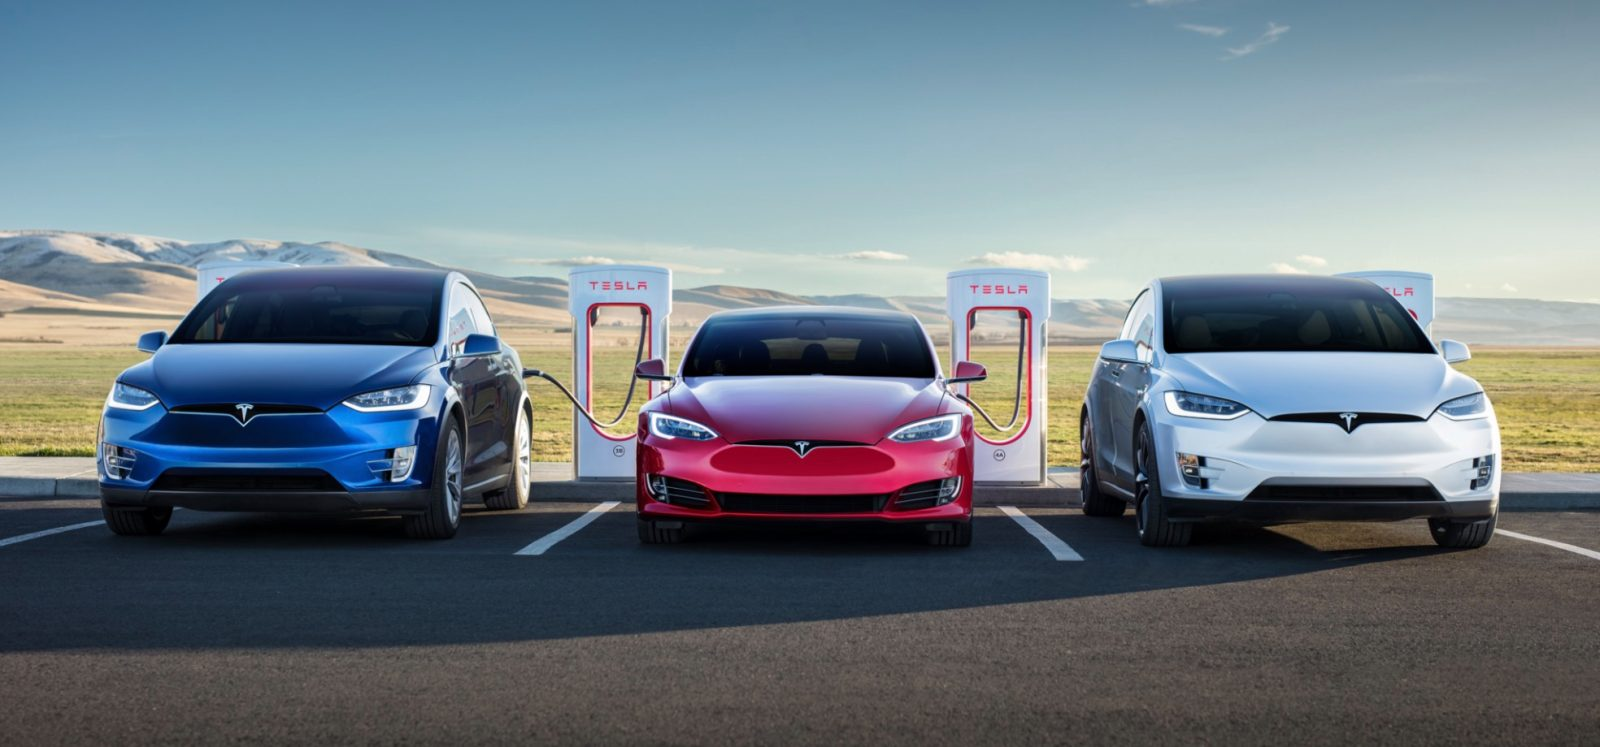 Tesla Car Prices to Reduce after Cybertruck's Launch